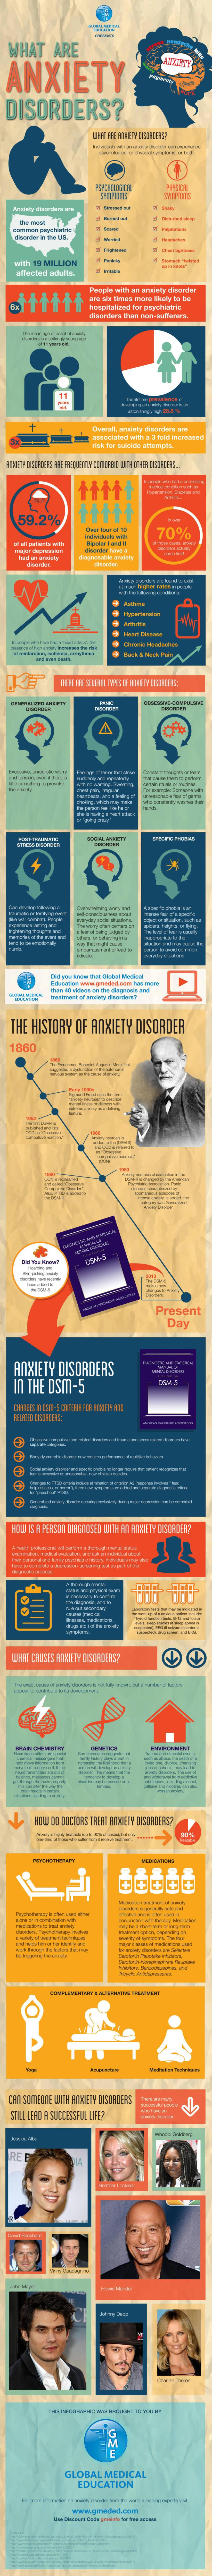 Anxiety Disorder: The Under-Estimated Killer Disease - Infographic